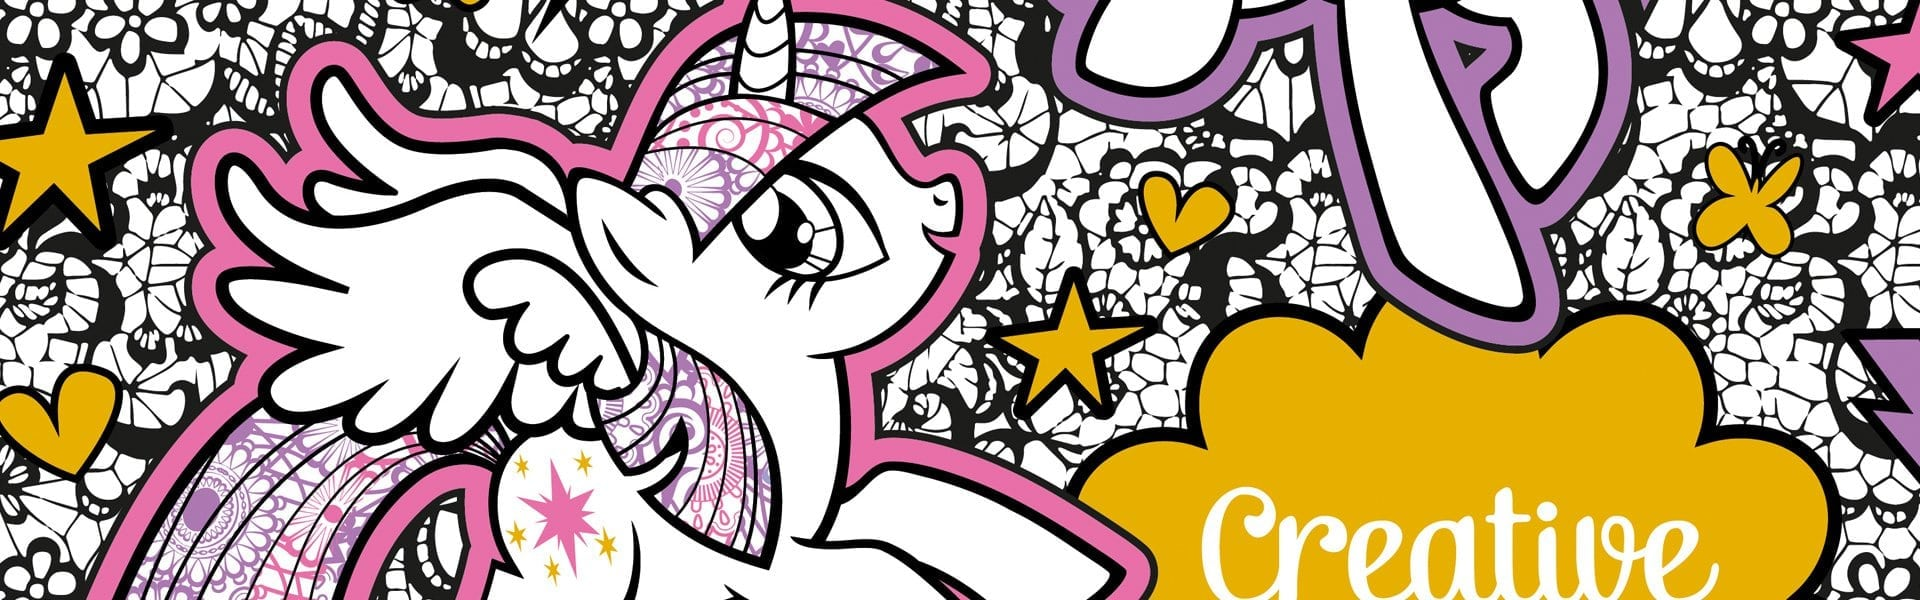 My Little Pony  Creative Colouring Book Free Pattern Download